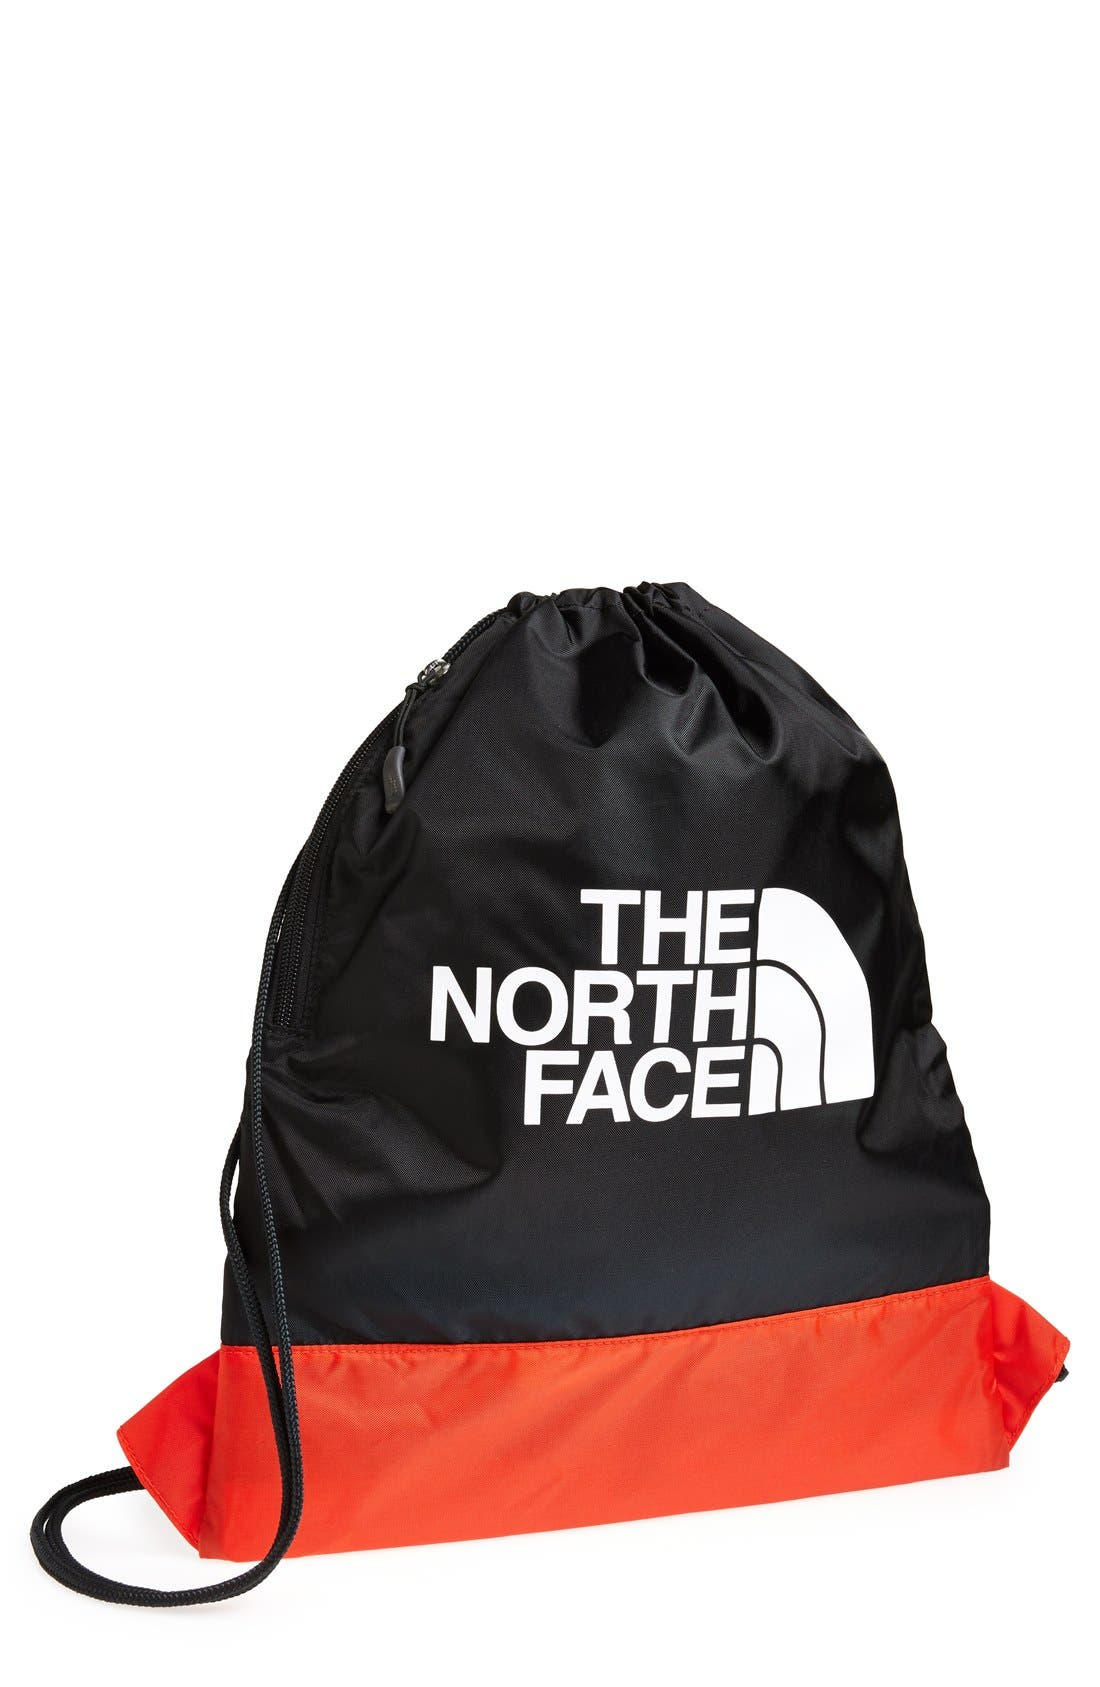 Alternate Image 1 Selected - The North Face 'Sack Pack' Drawstring Nylon Bag